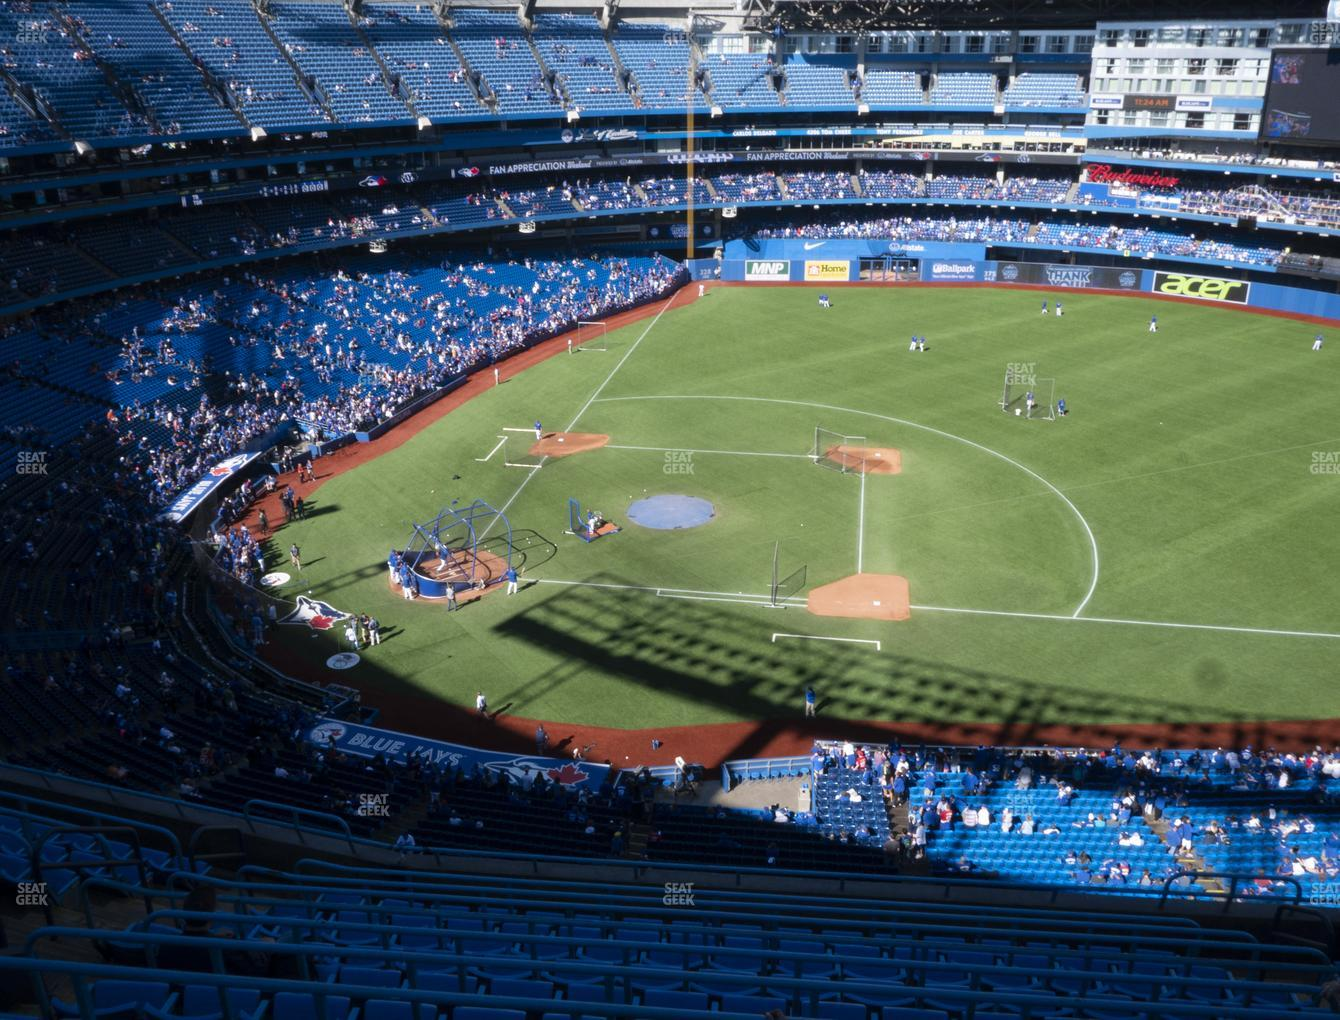 Toronto Blue Jays at Rogers Centre Section 518 R View